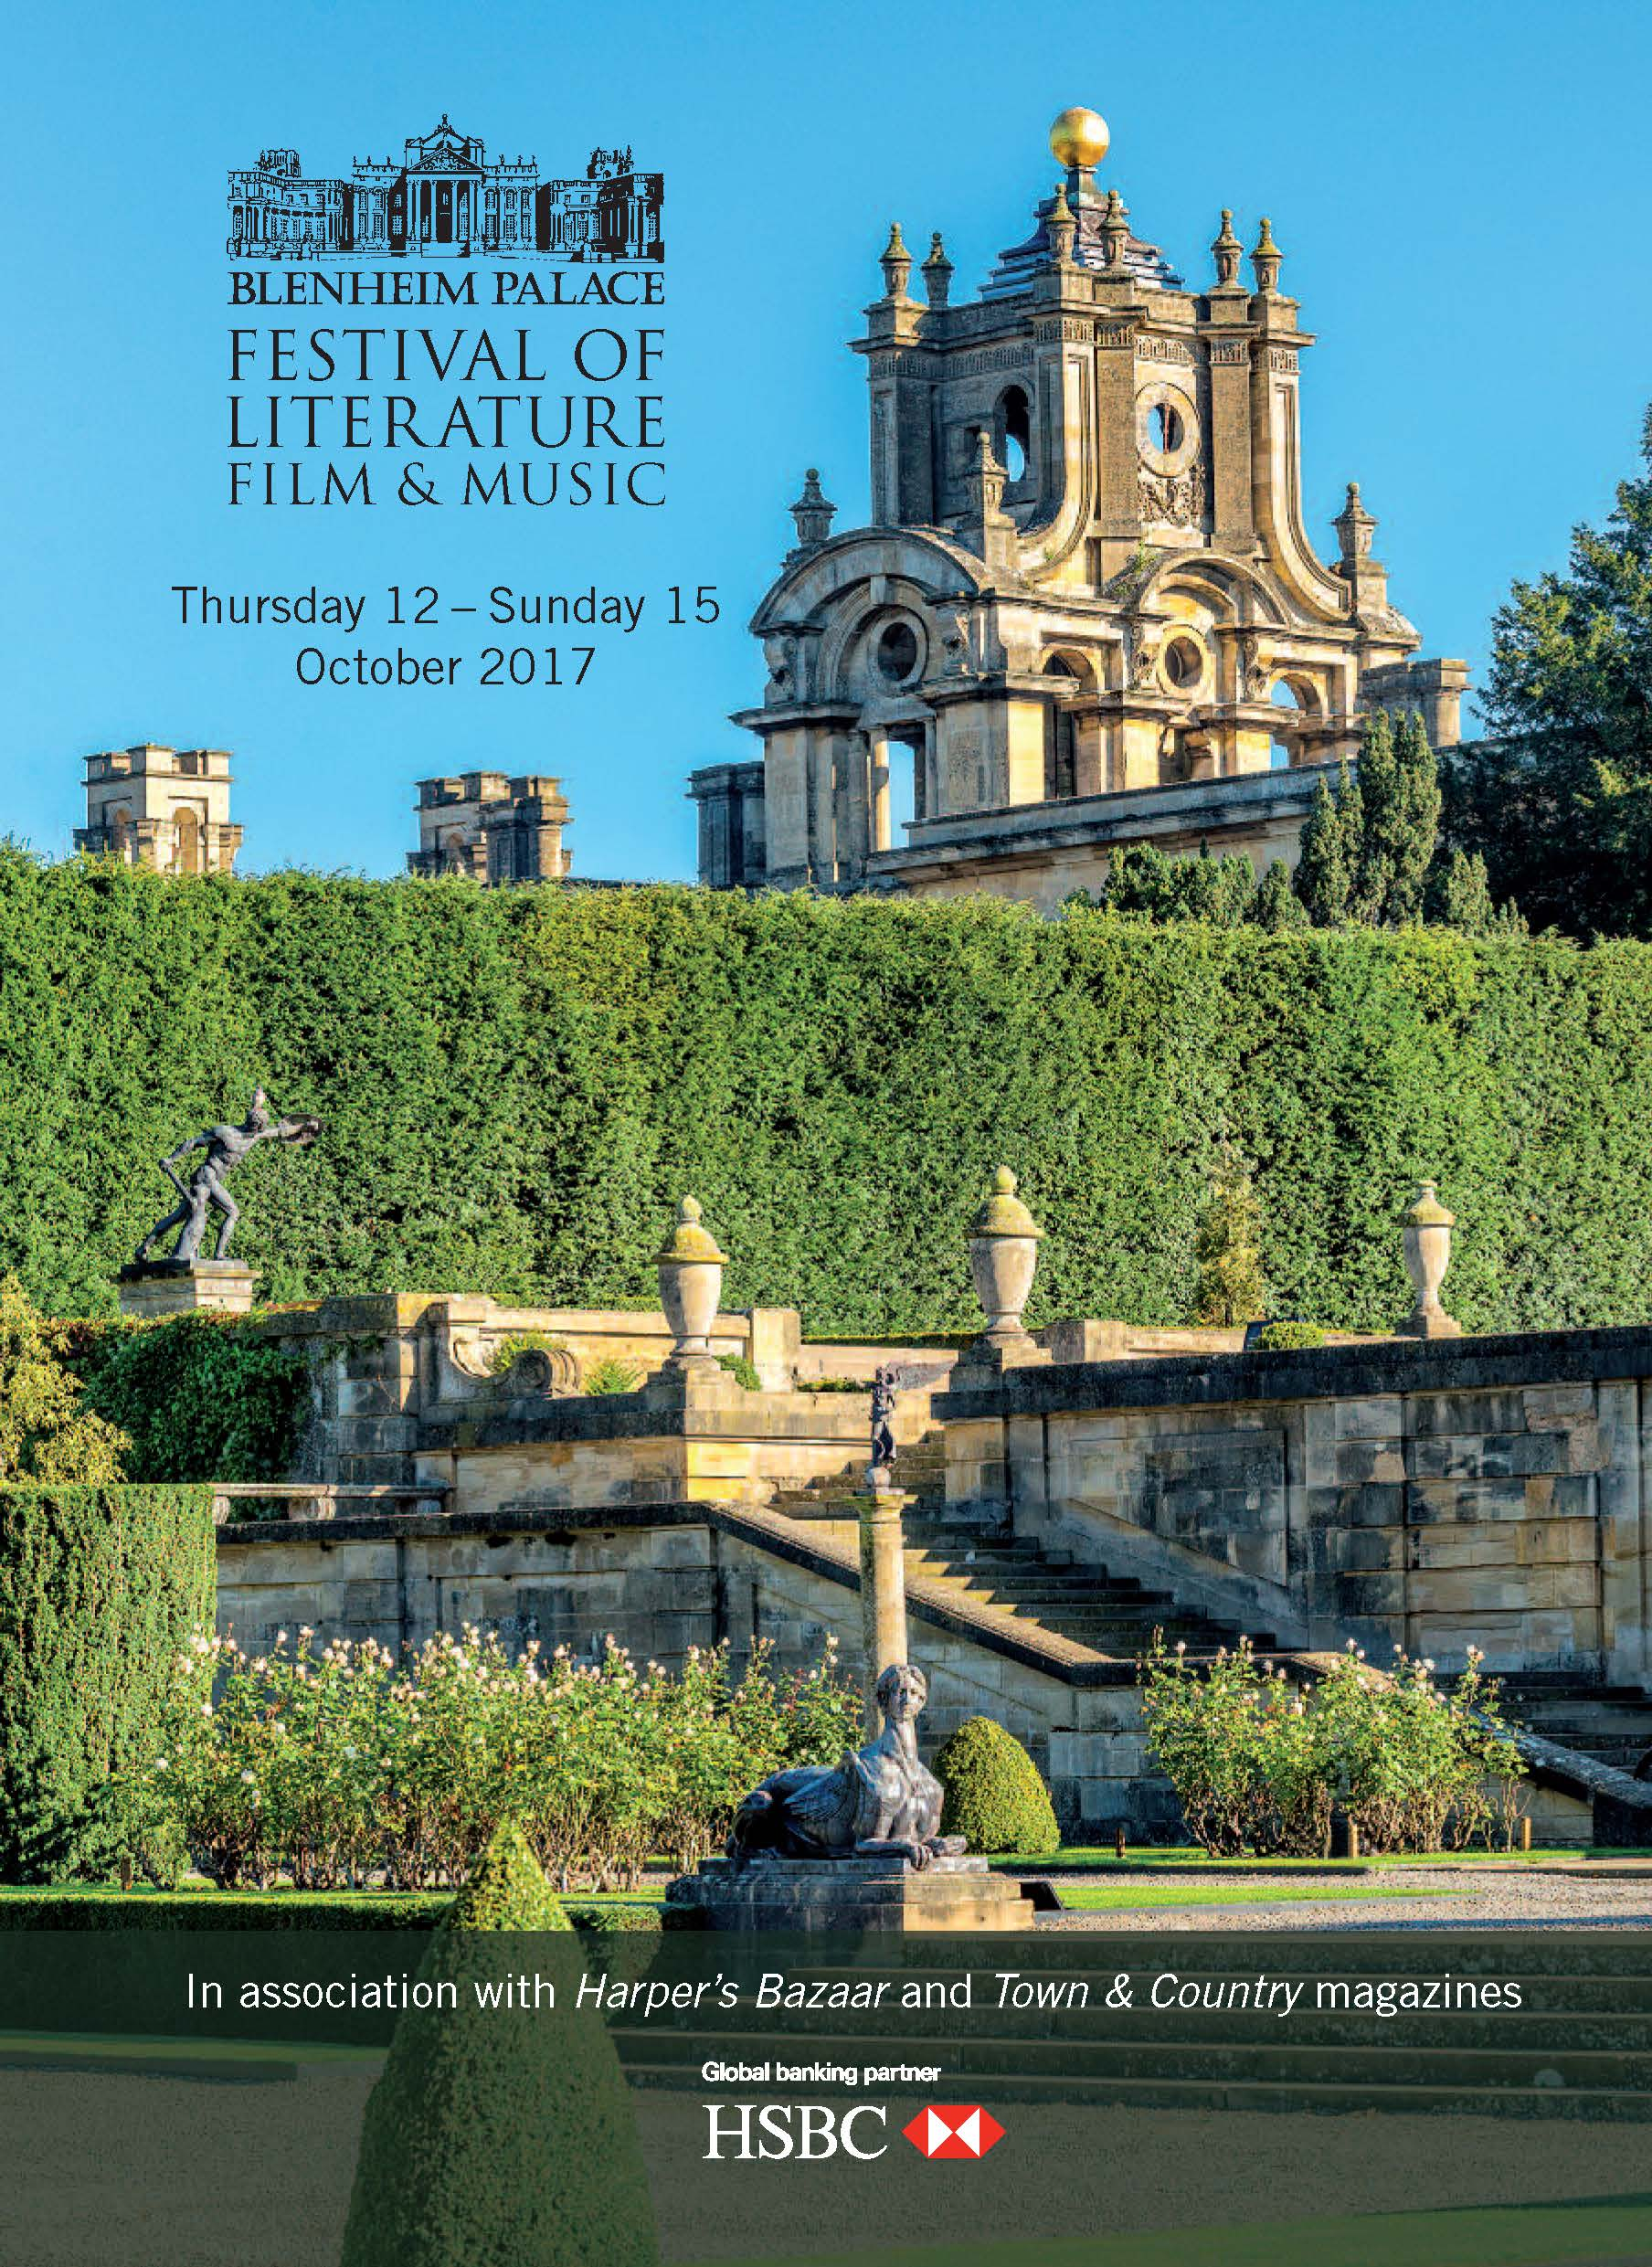 Blenheim Palace Festival of Literature, Film and Music 2017 brochure